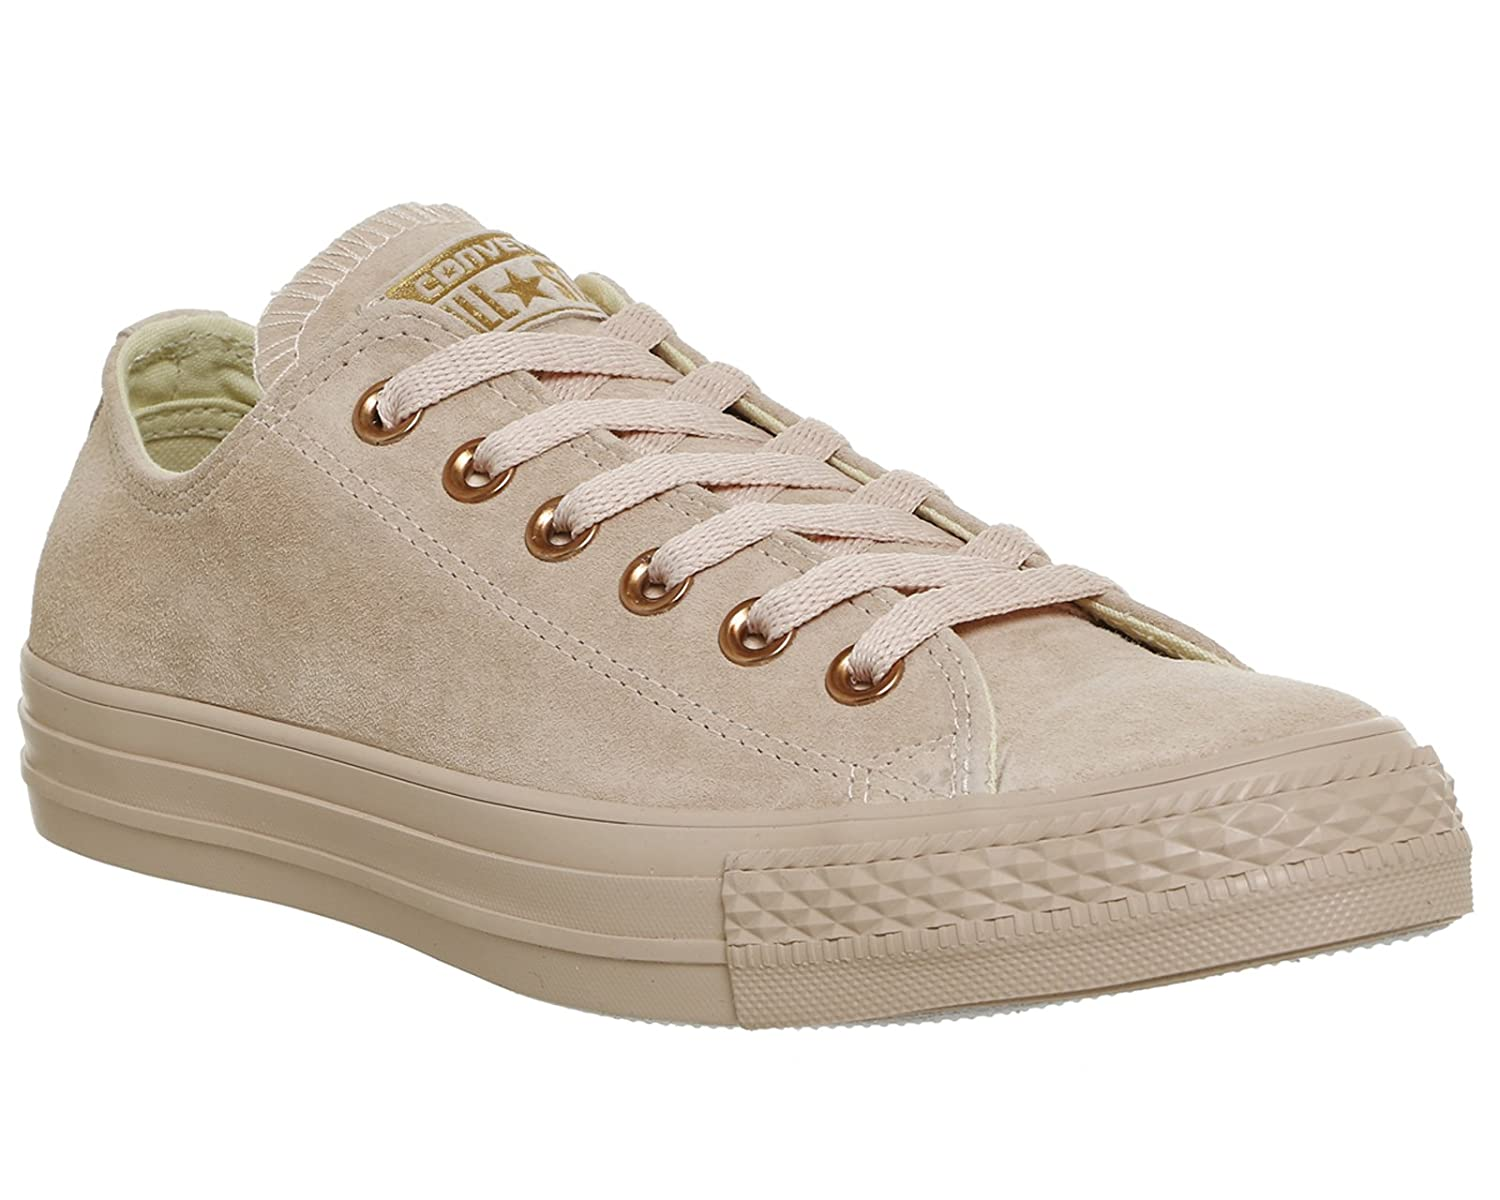 Converse Star Player Ox, Chaussures Gold de Fitness Mixte Adulte 4 UK|Bisque Rose Gold Chaussures Exclusive dbdd0a